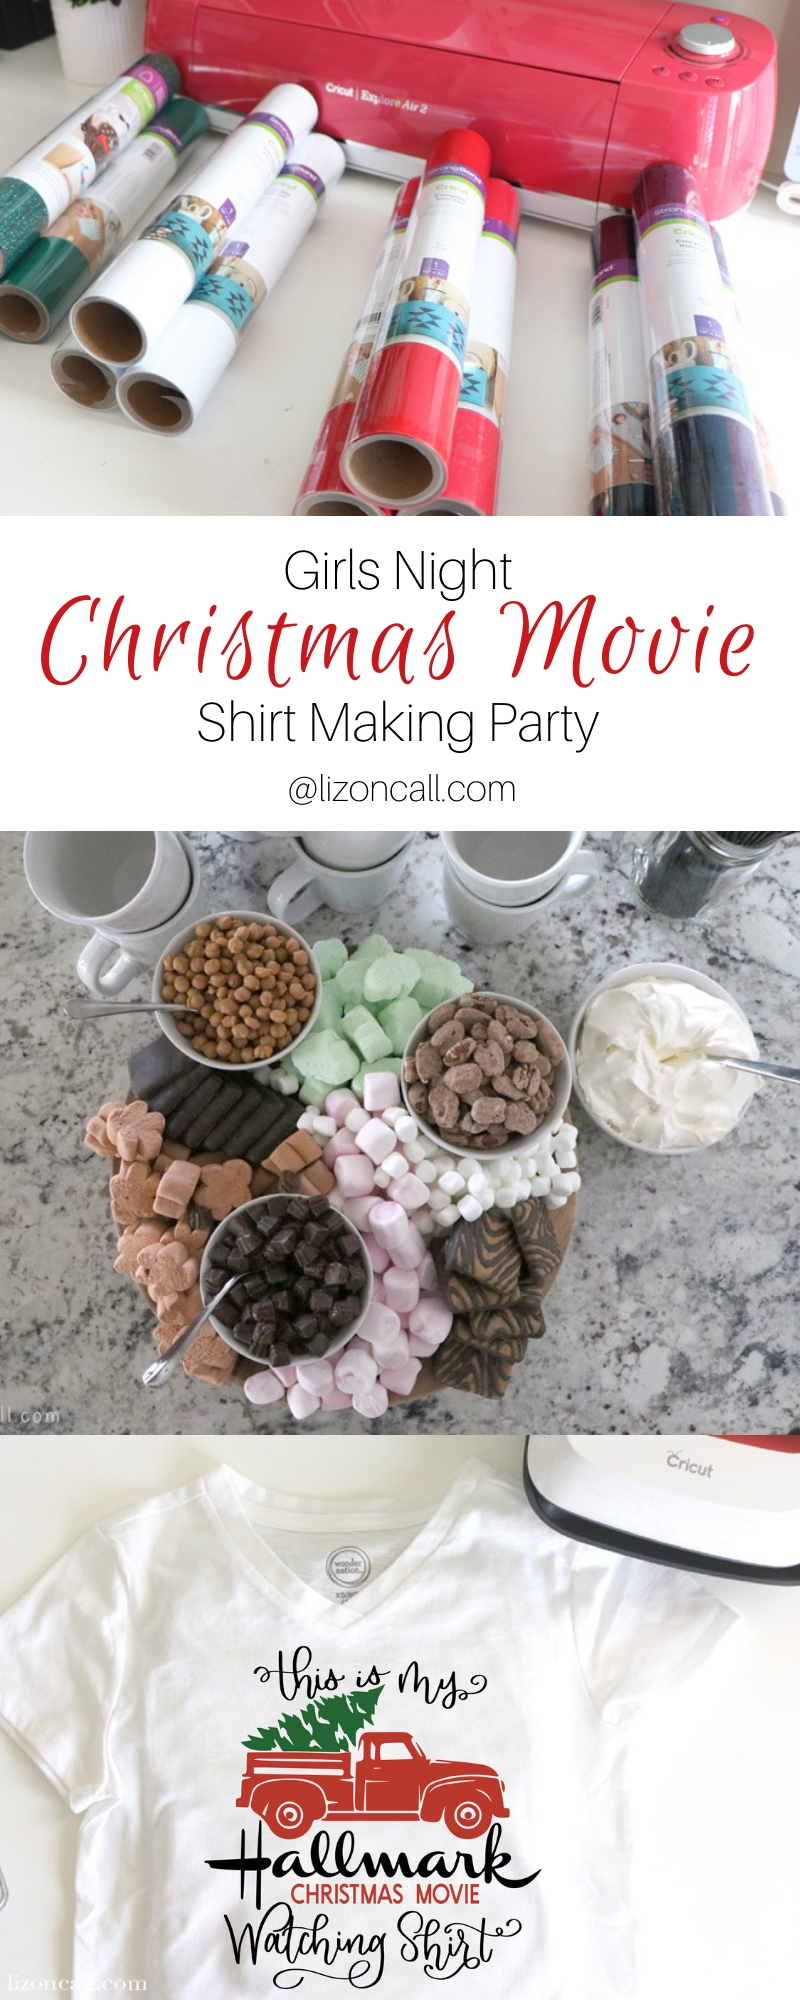 Titled Pinnable image for DIY Christmas movie watching shirt